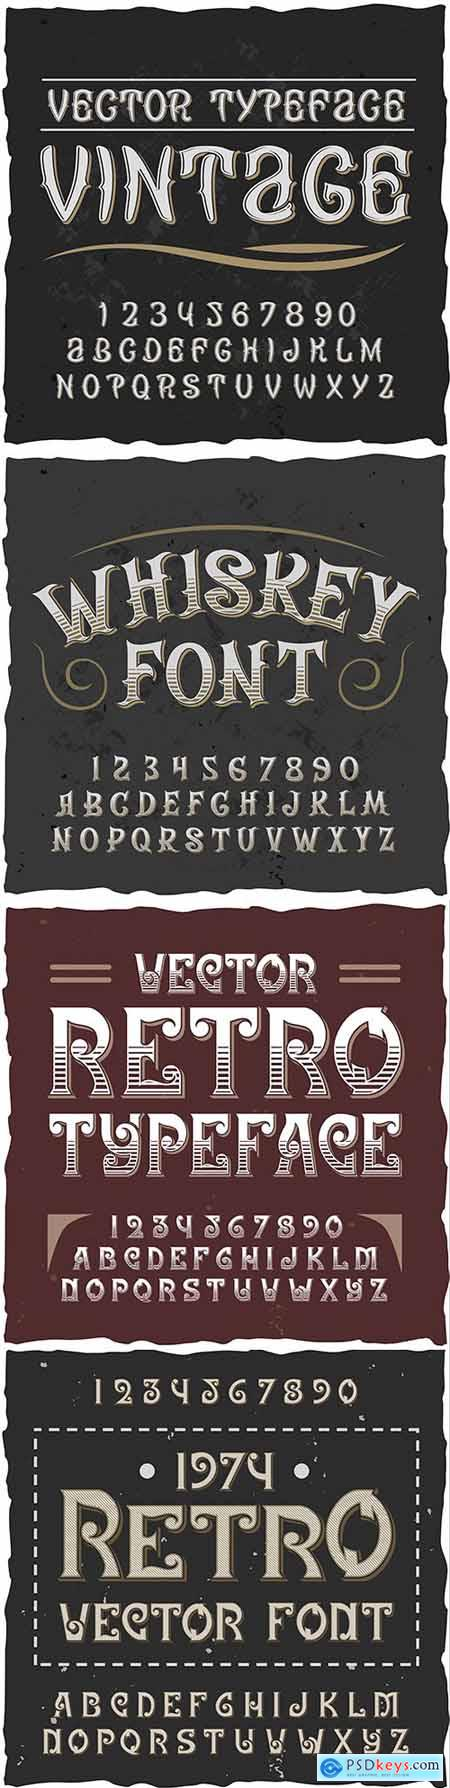 Retro alphabet with editable richly decorated text and numbers